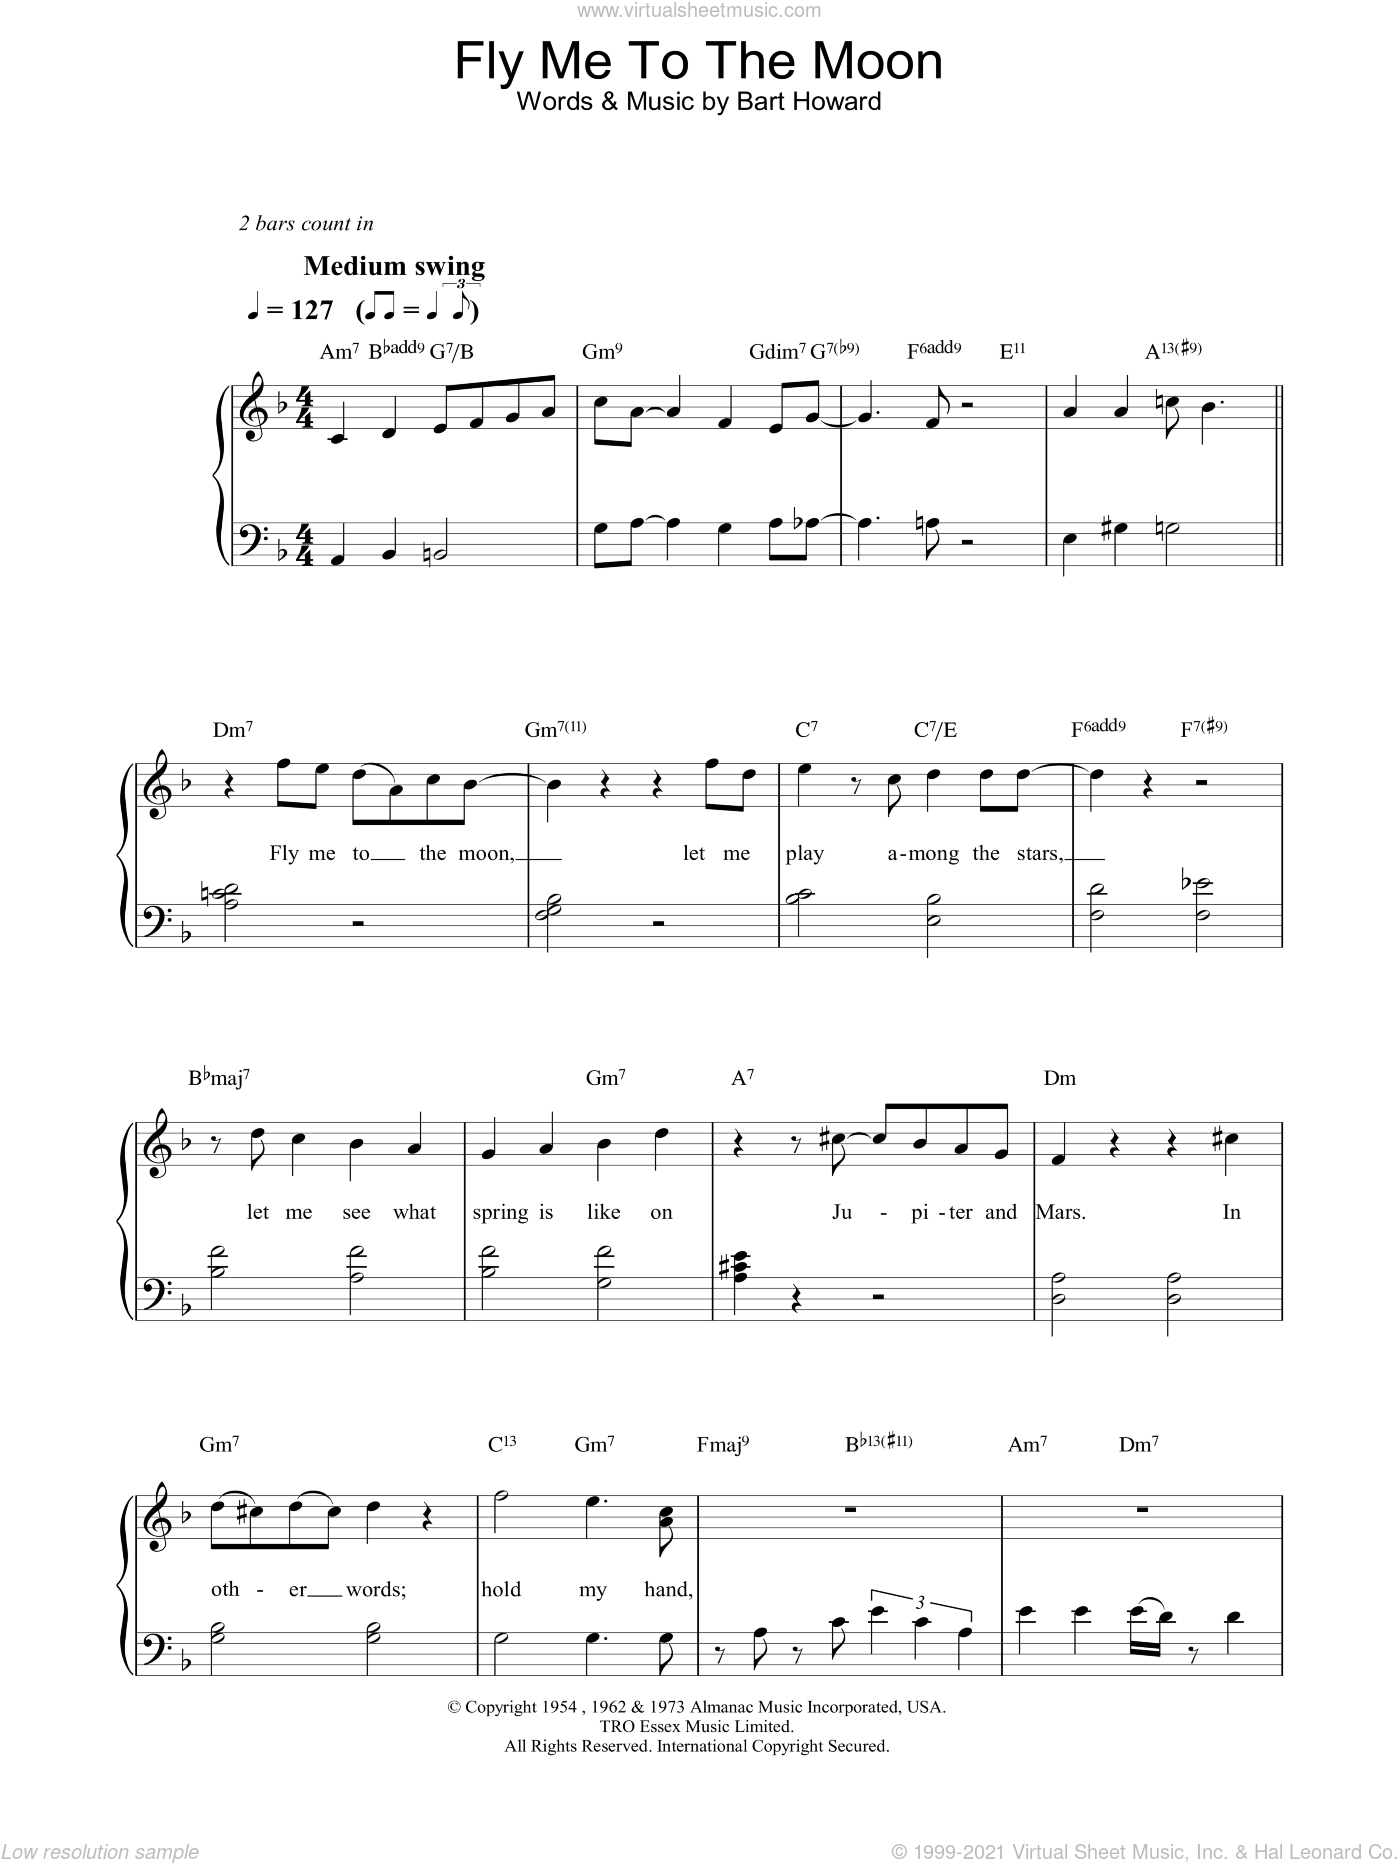 Fly Me To The Moon (In Other Words) sheet music for voice, piano or guitar by Bart Howard